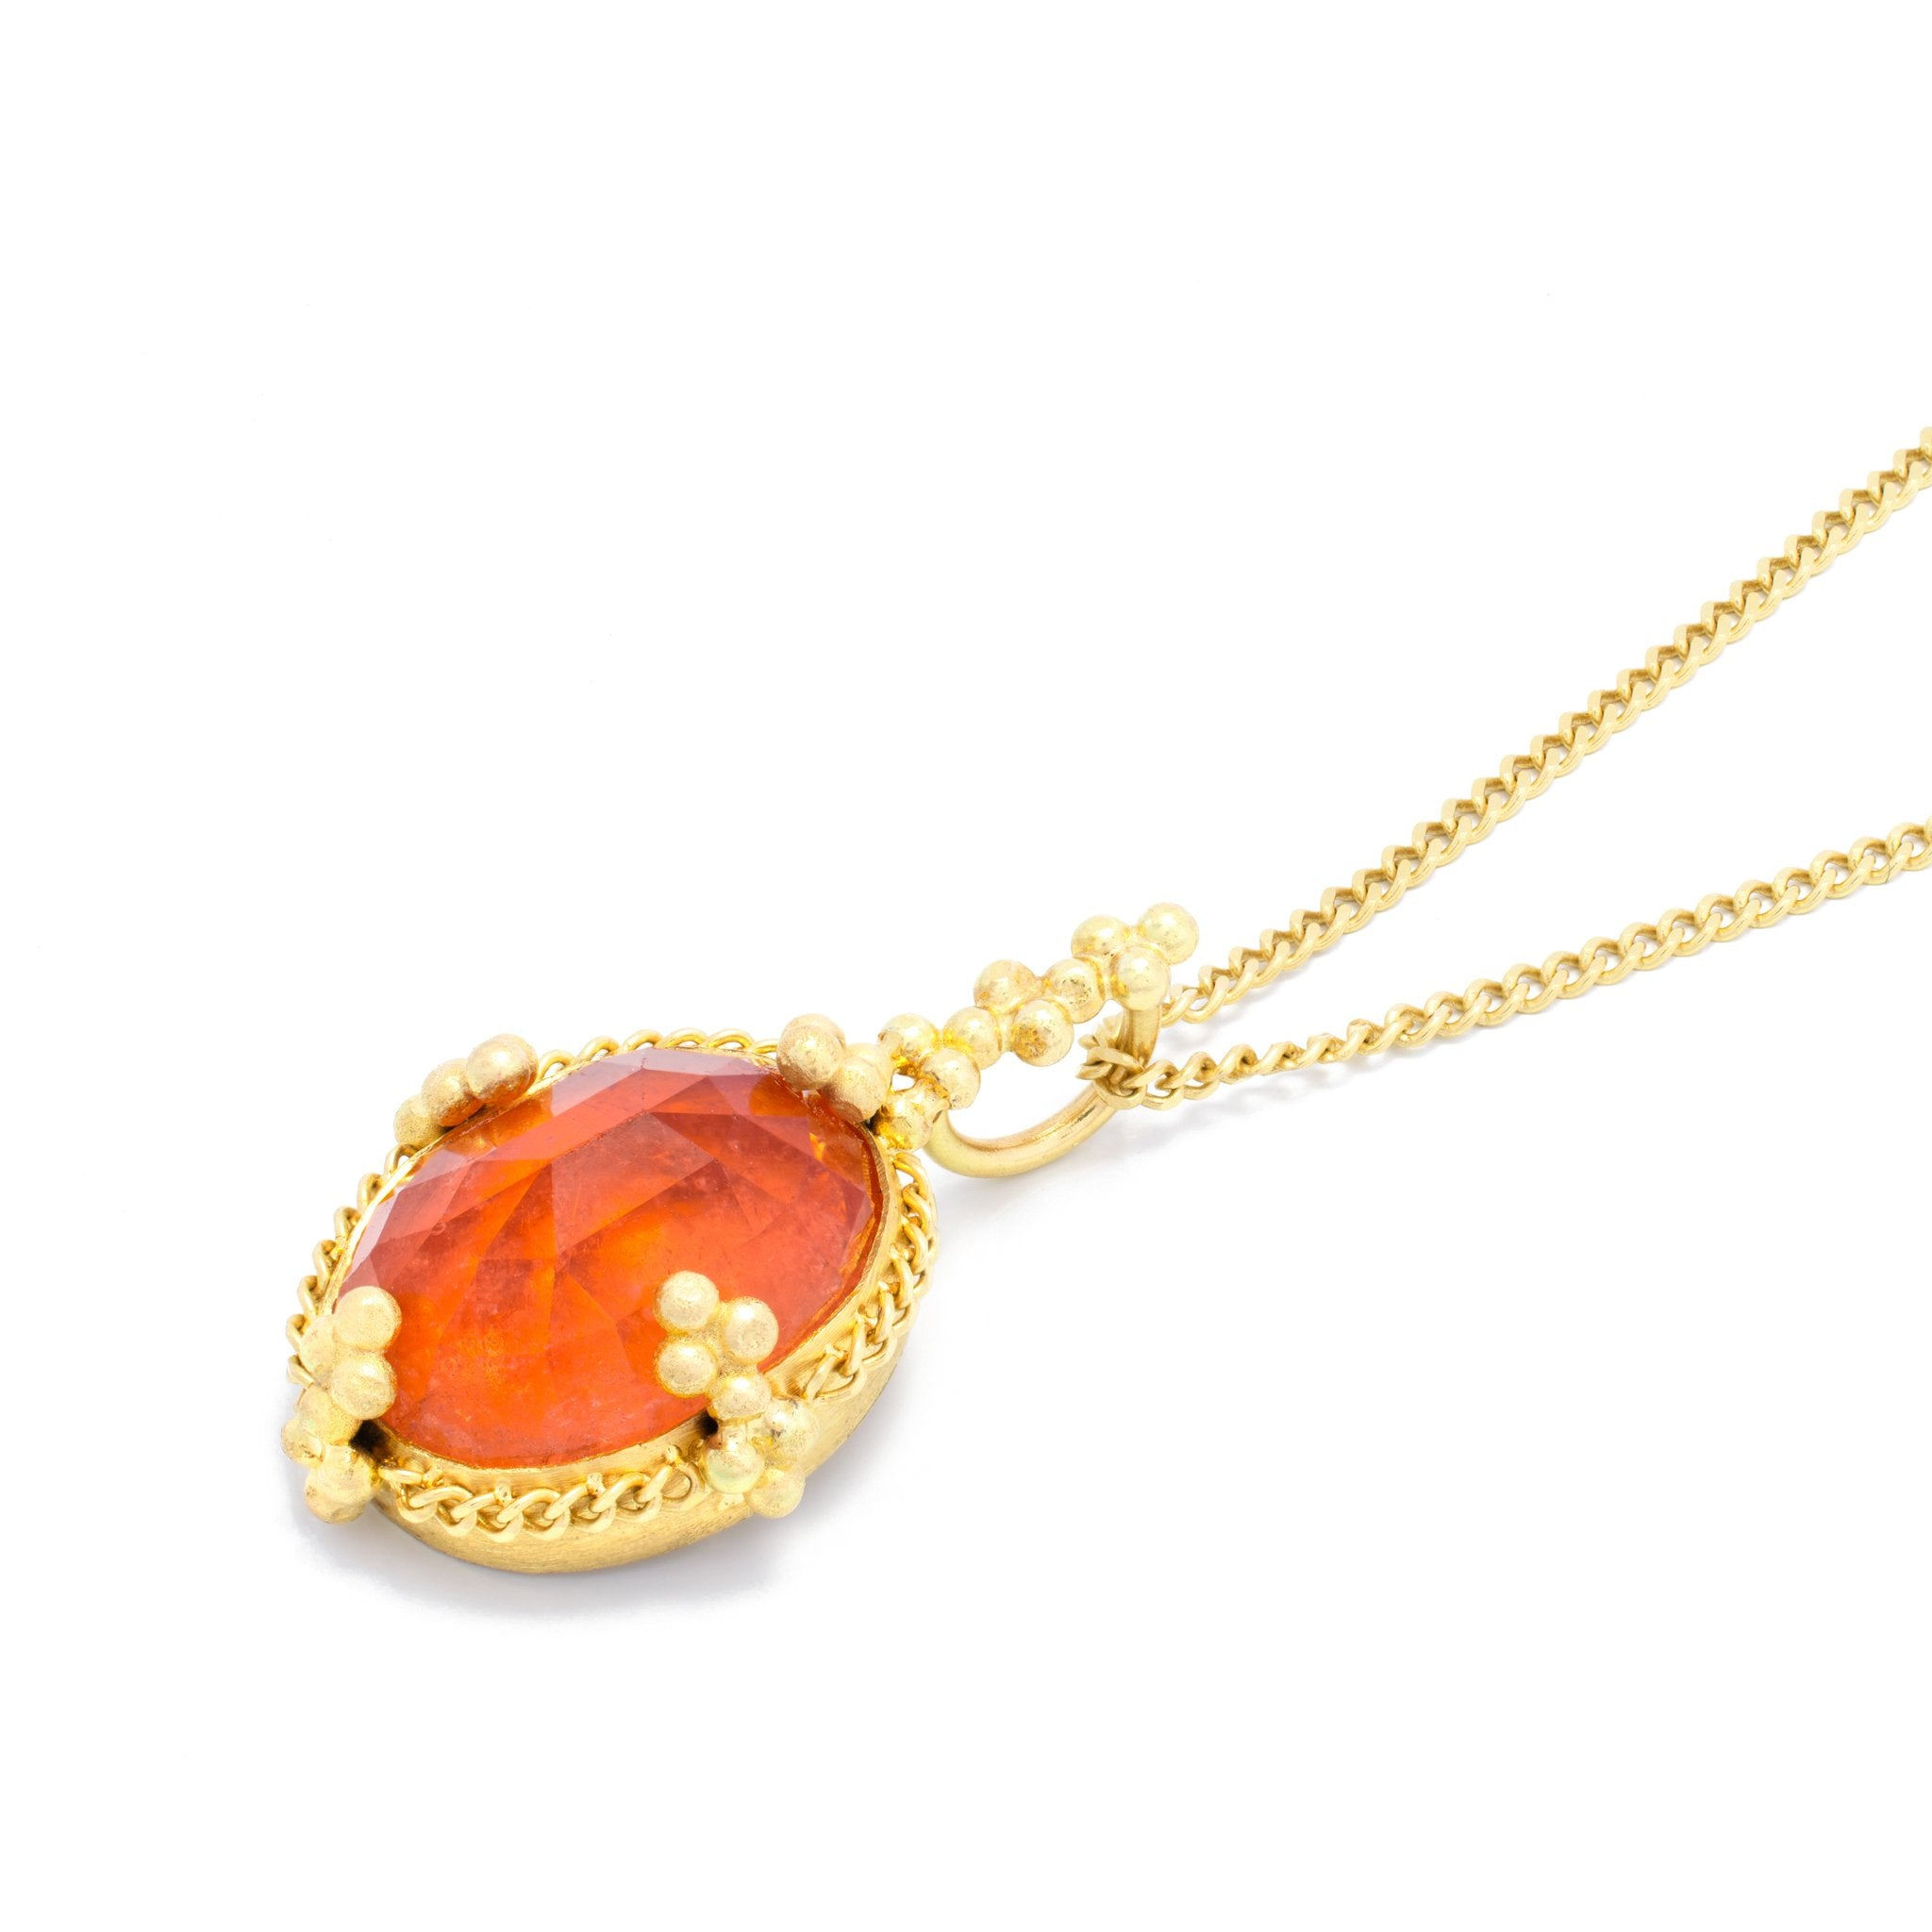 Peach Tourmaline Necklace